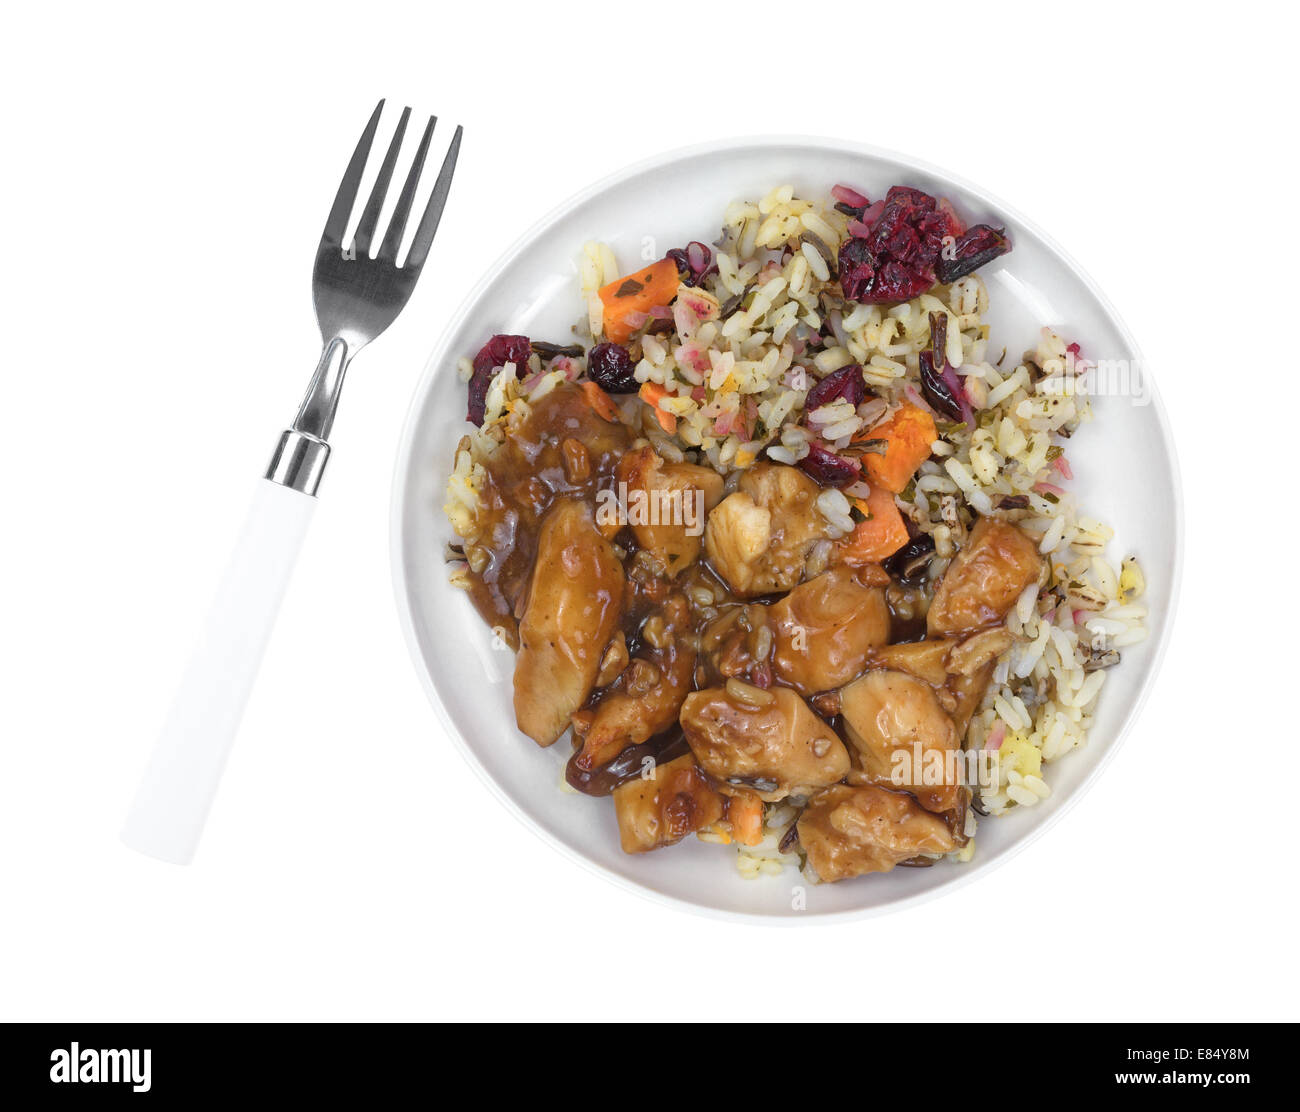 Top view of a cooked TV dinner with chicken in a pecan sauce, rice and cranberries in a small plate with fork to - Stock Image